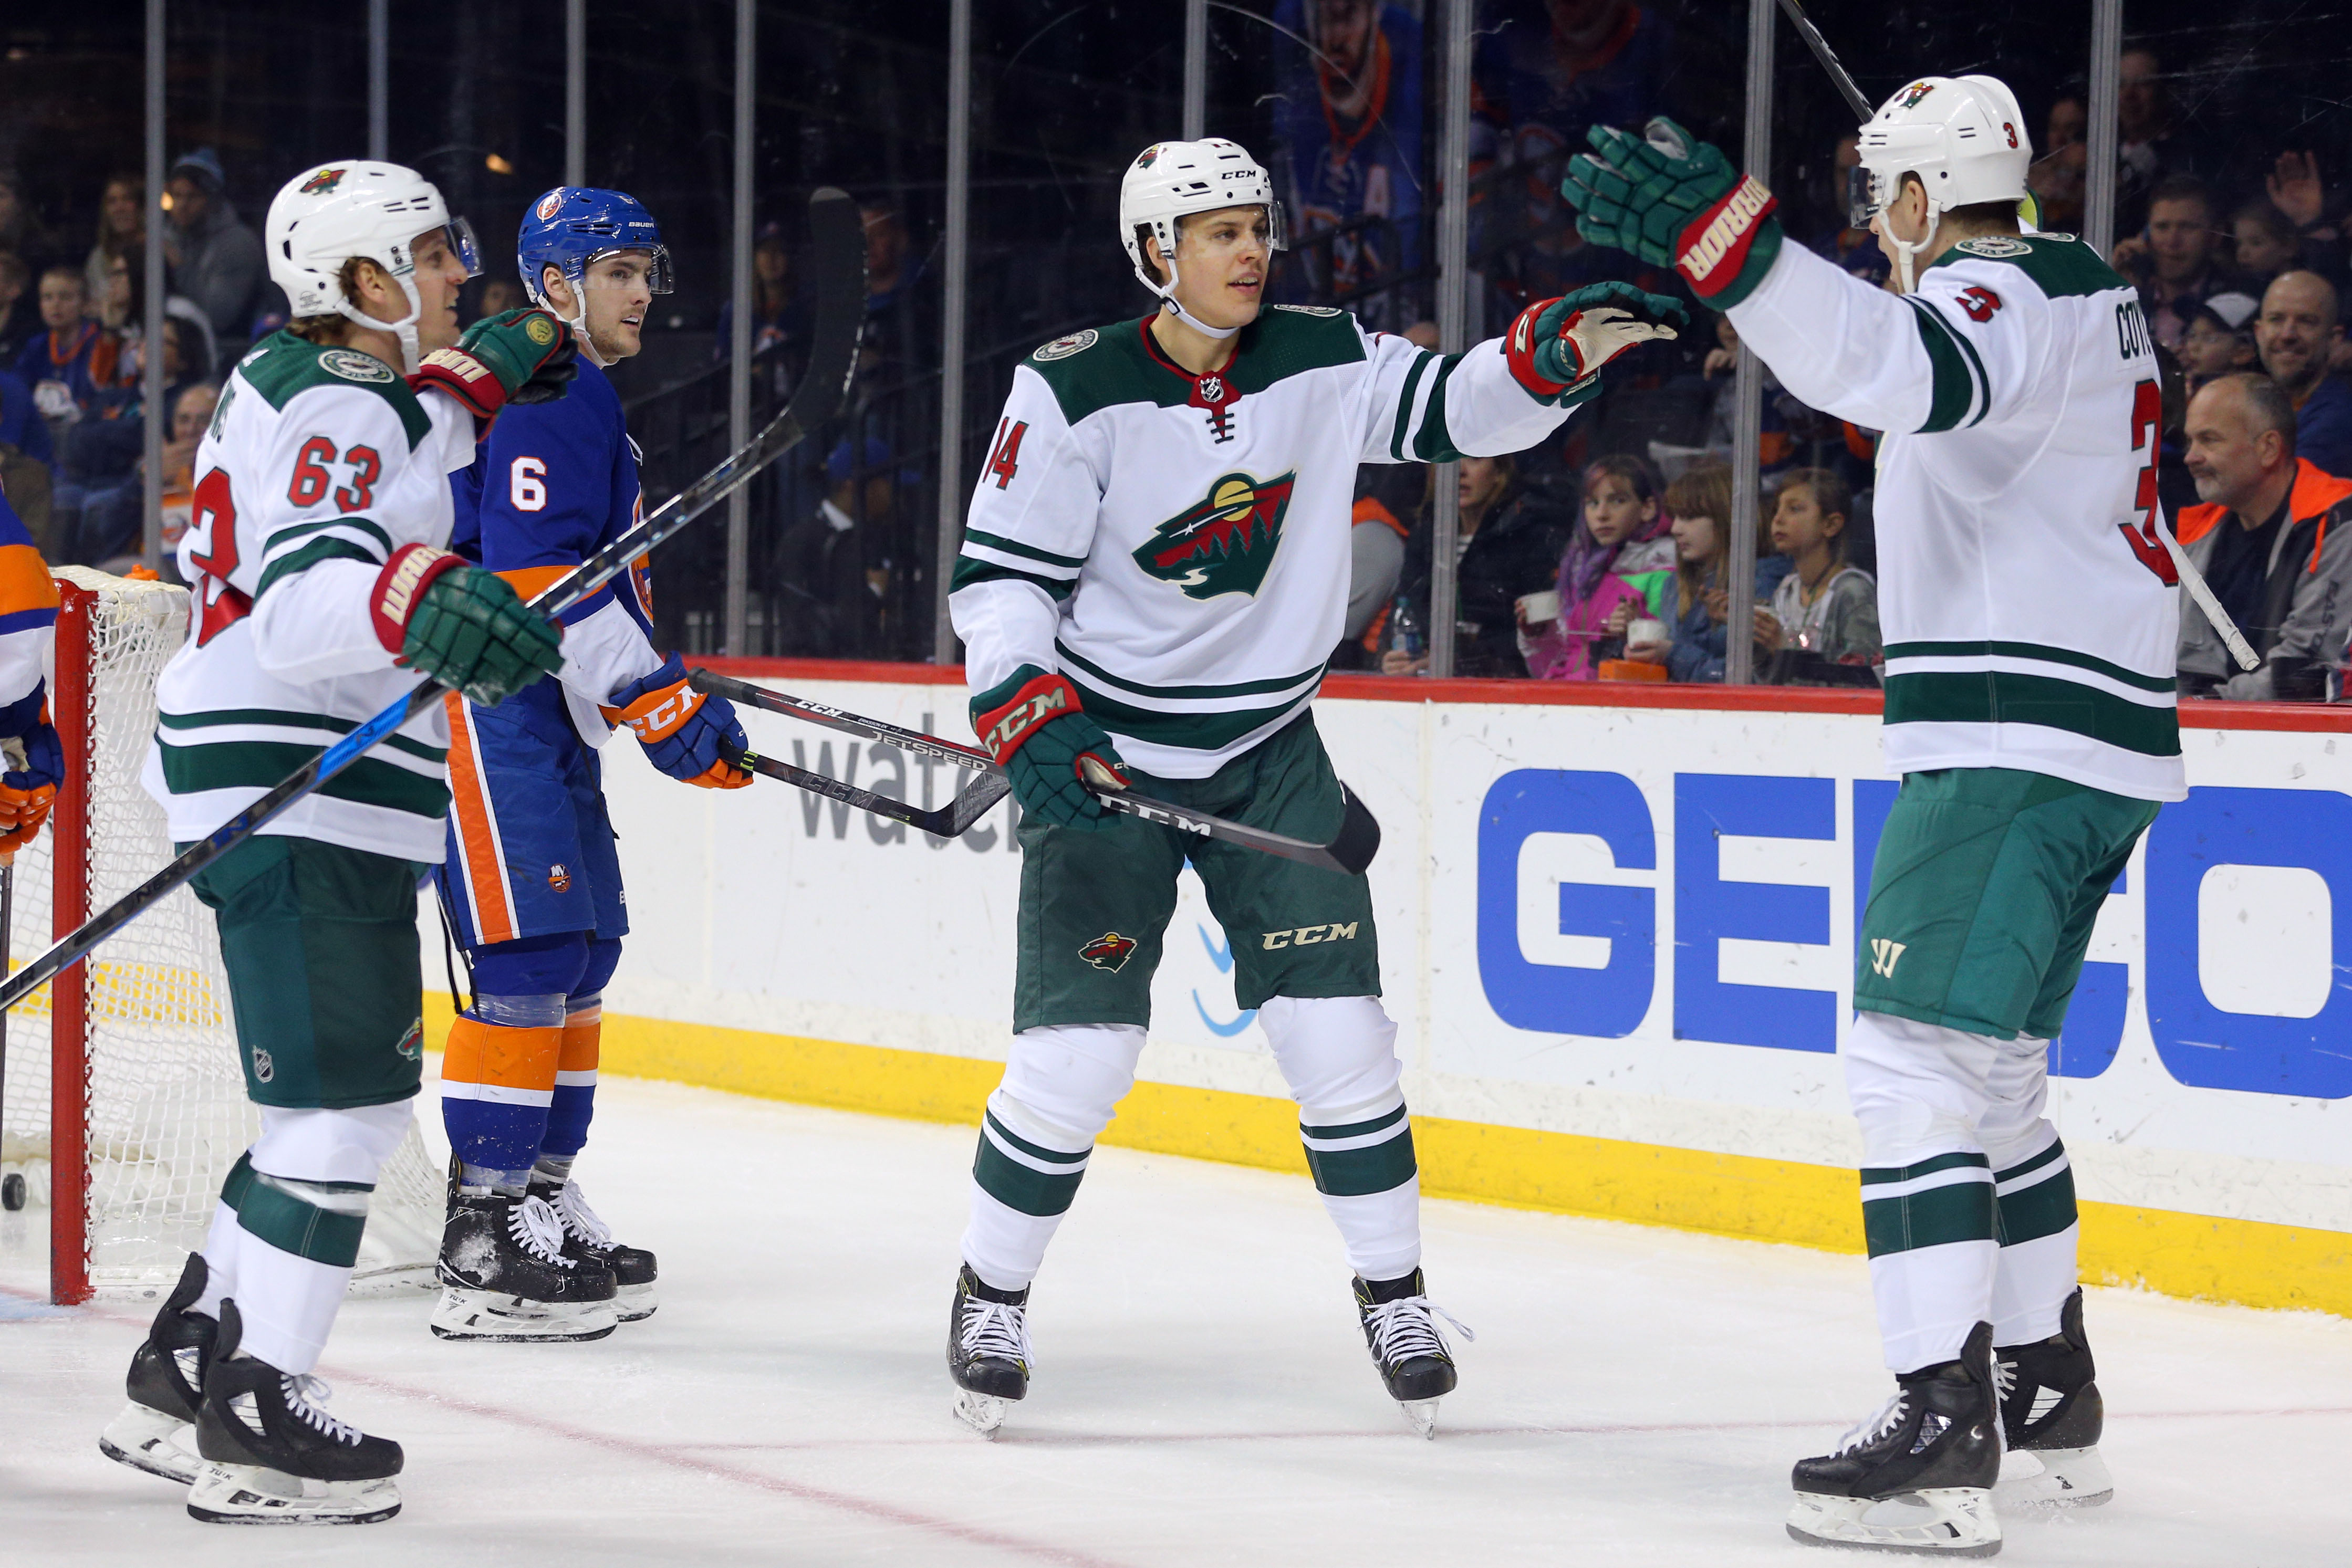 Feb 19, 2018; Brooklyn, NY, USA; Minnesota Wild center Joel Eriksson Ek (14) celebrates his goal against the New York Islanders with center Charlie Coyle (3) and left wing Tyler Ennis (63) during the first period at Barclays Center. Mandatory Credit: Brad Penner-USA TODAY Sports